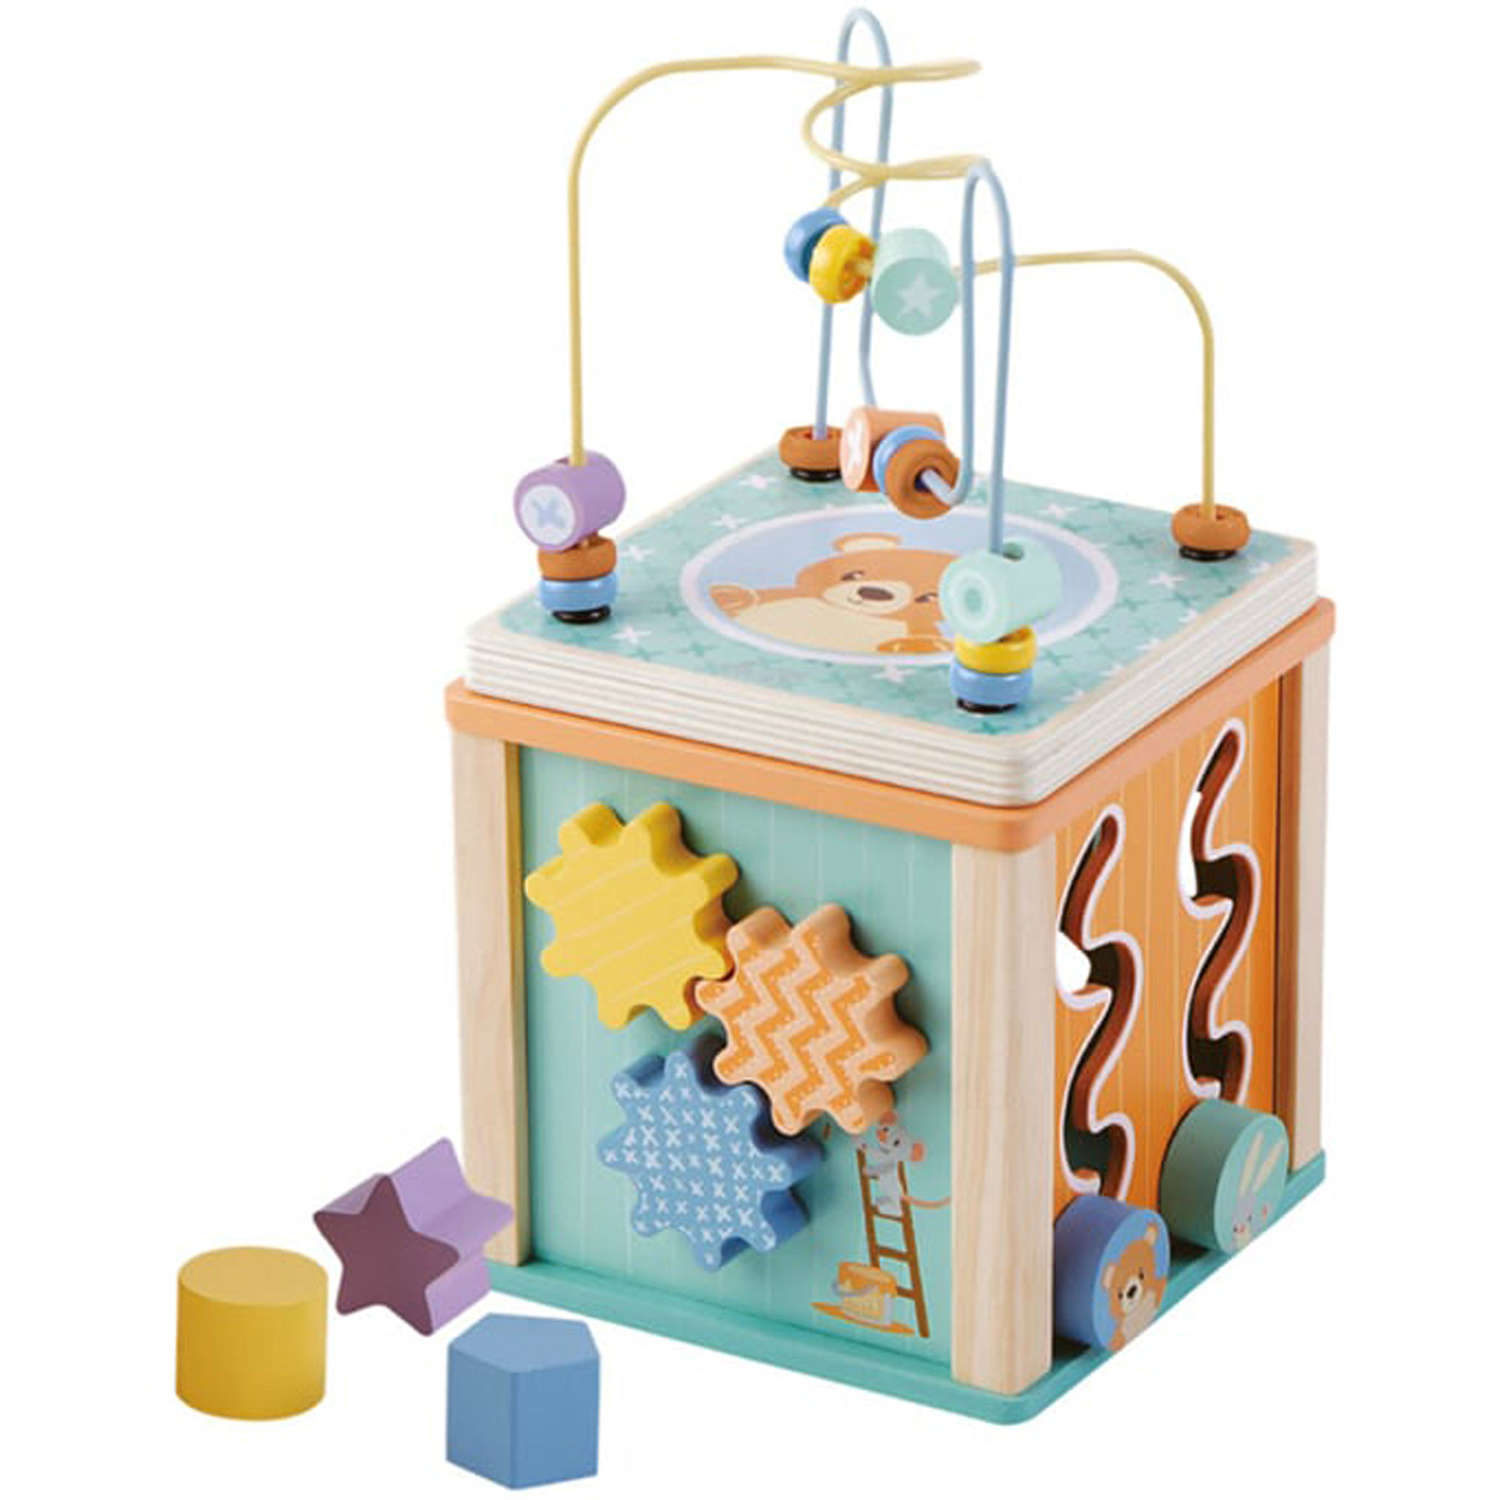 Wooden activity play cube